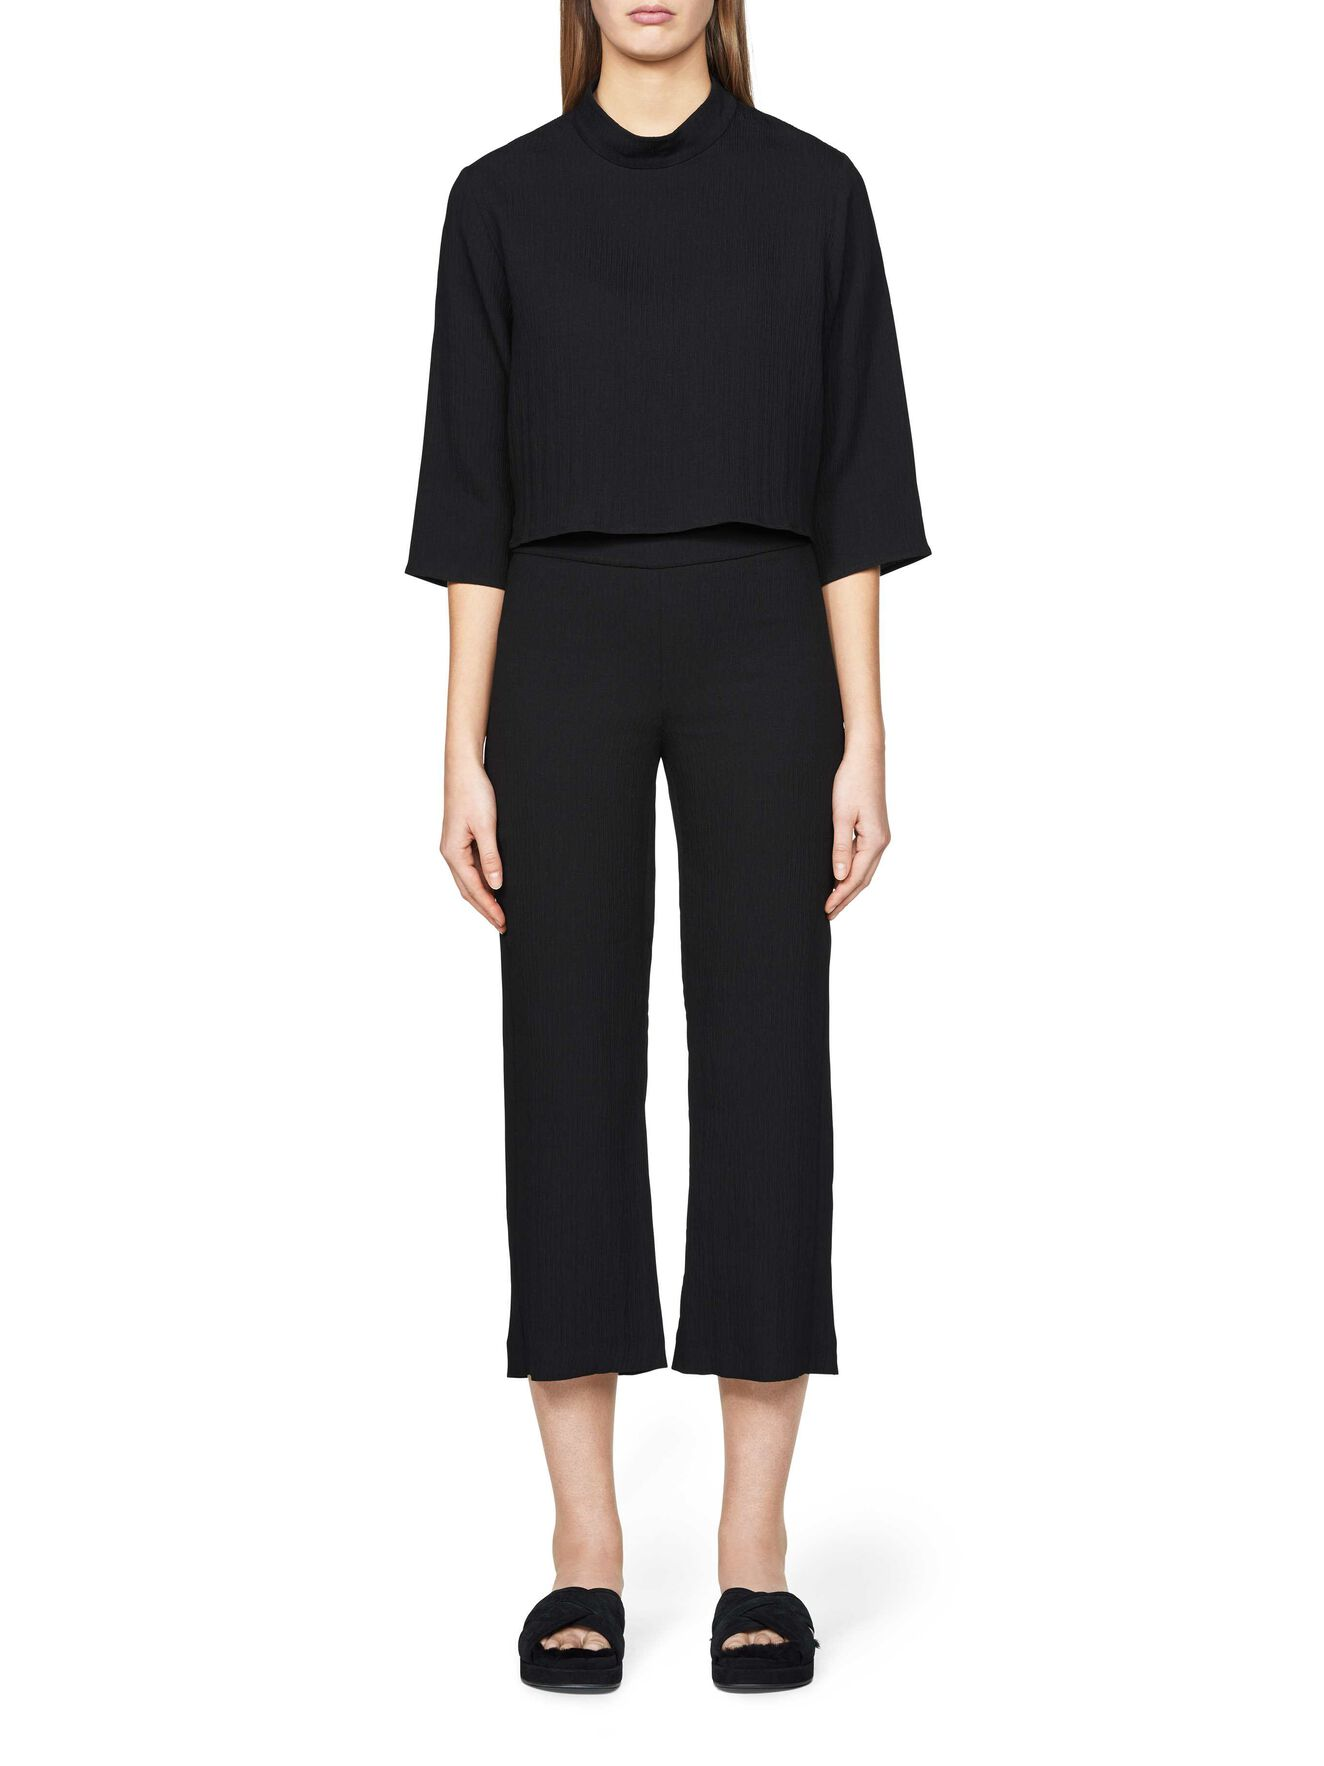 Wonted trousers in Black from Tiger of Sweden